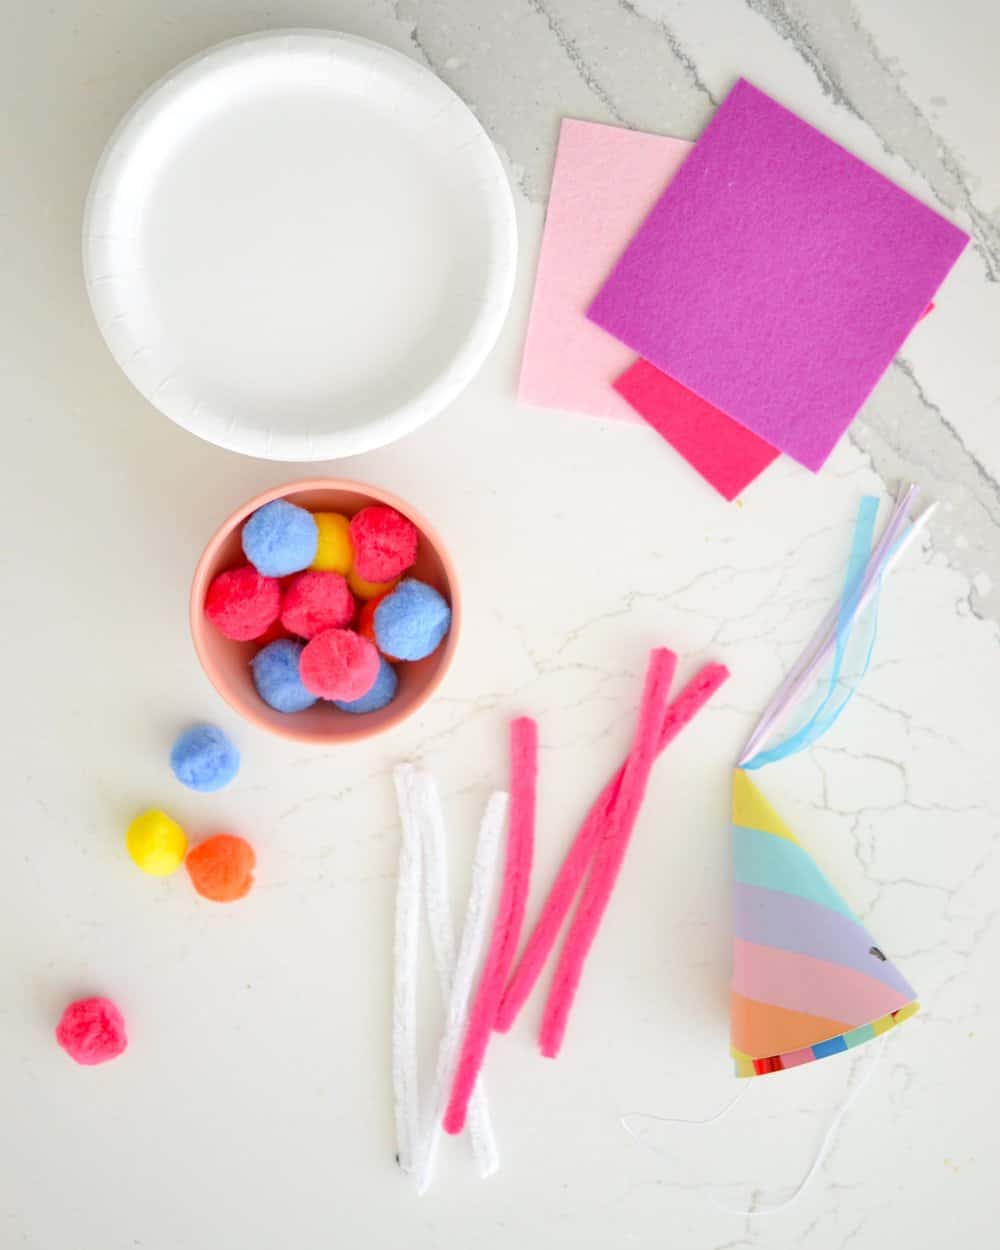 colorful craft supplies laid out for an easter bunny mask